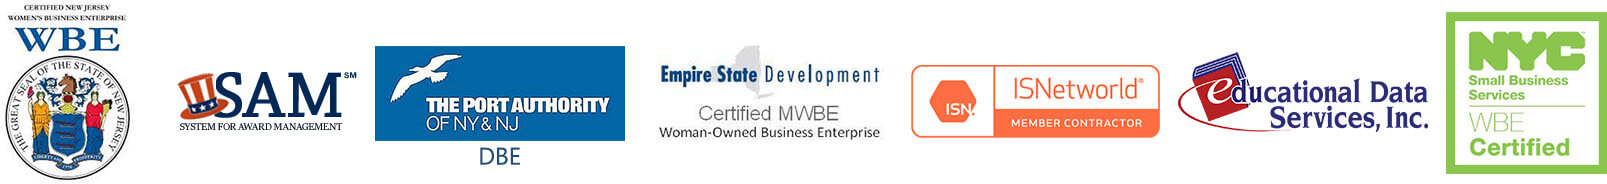 certifications for mccabe (2)